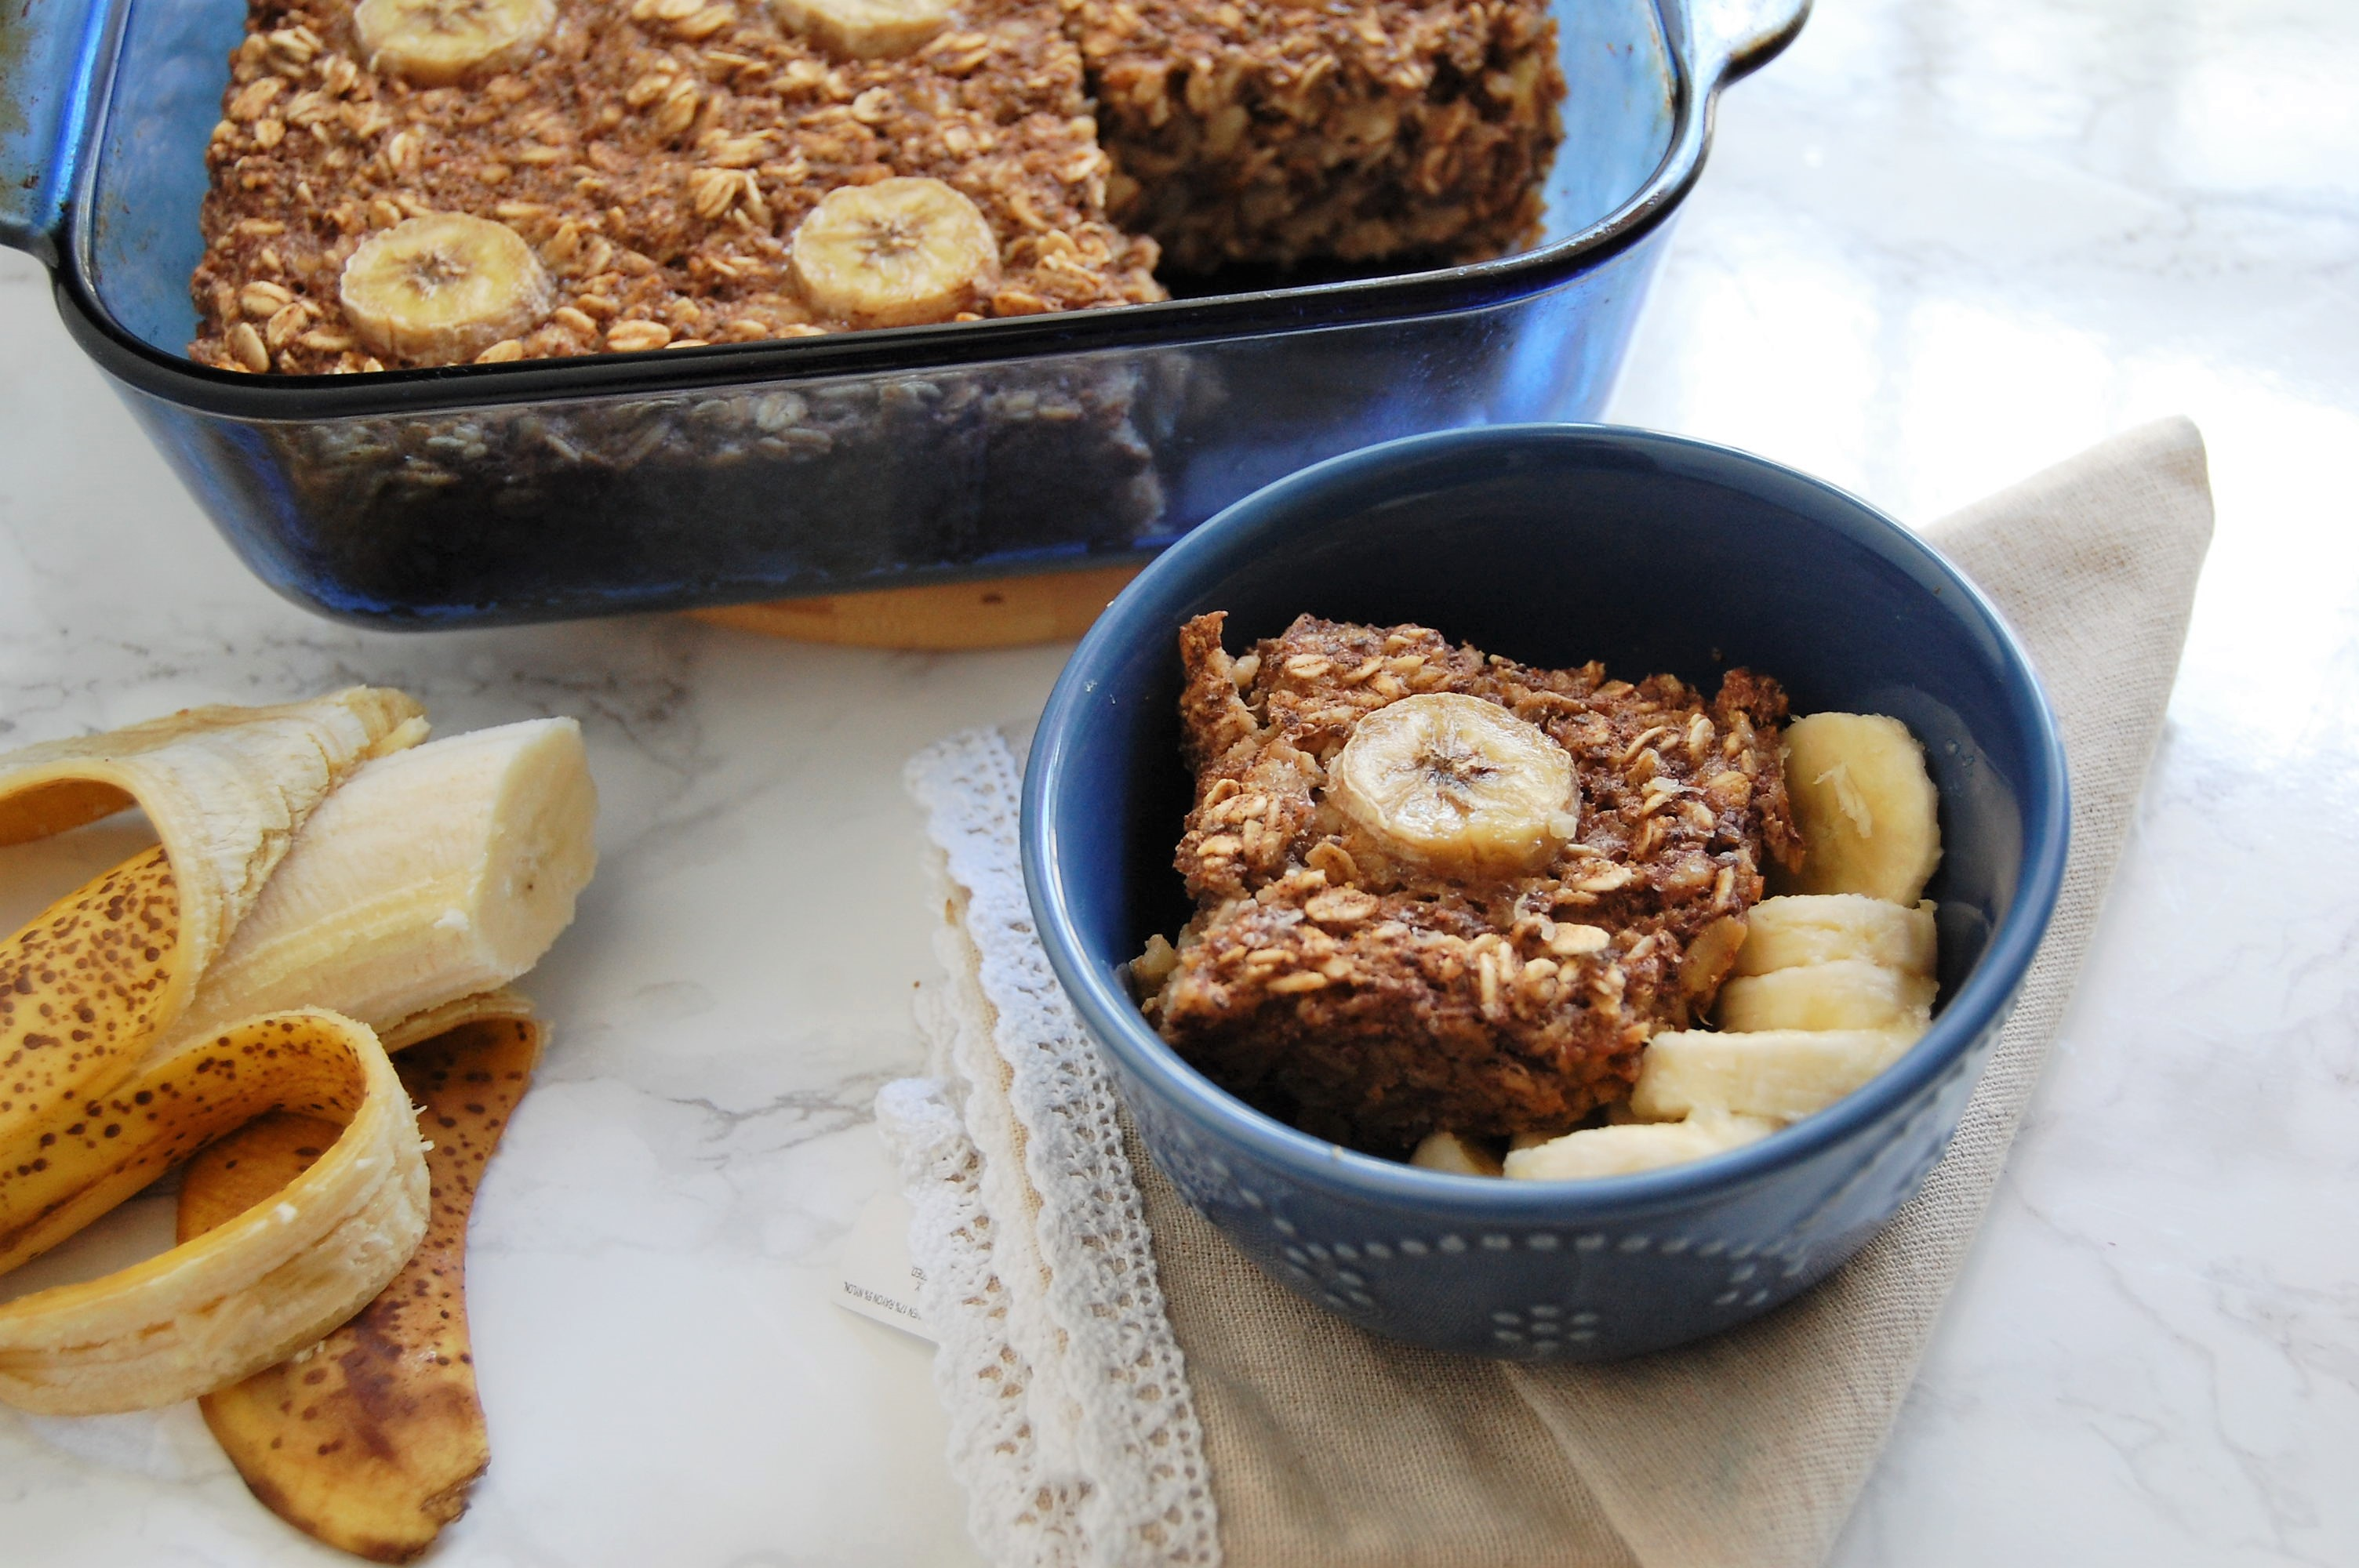 Banana Bread Baked Oatmeal is a healthy, make-ahead breakfast packed with fiber and nutrients to give a solid start to your day! For the recipe and others like it, check out @nutritiontofit!